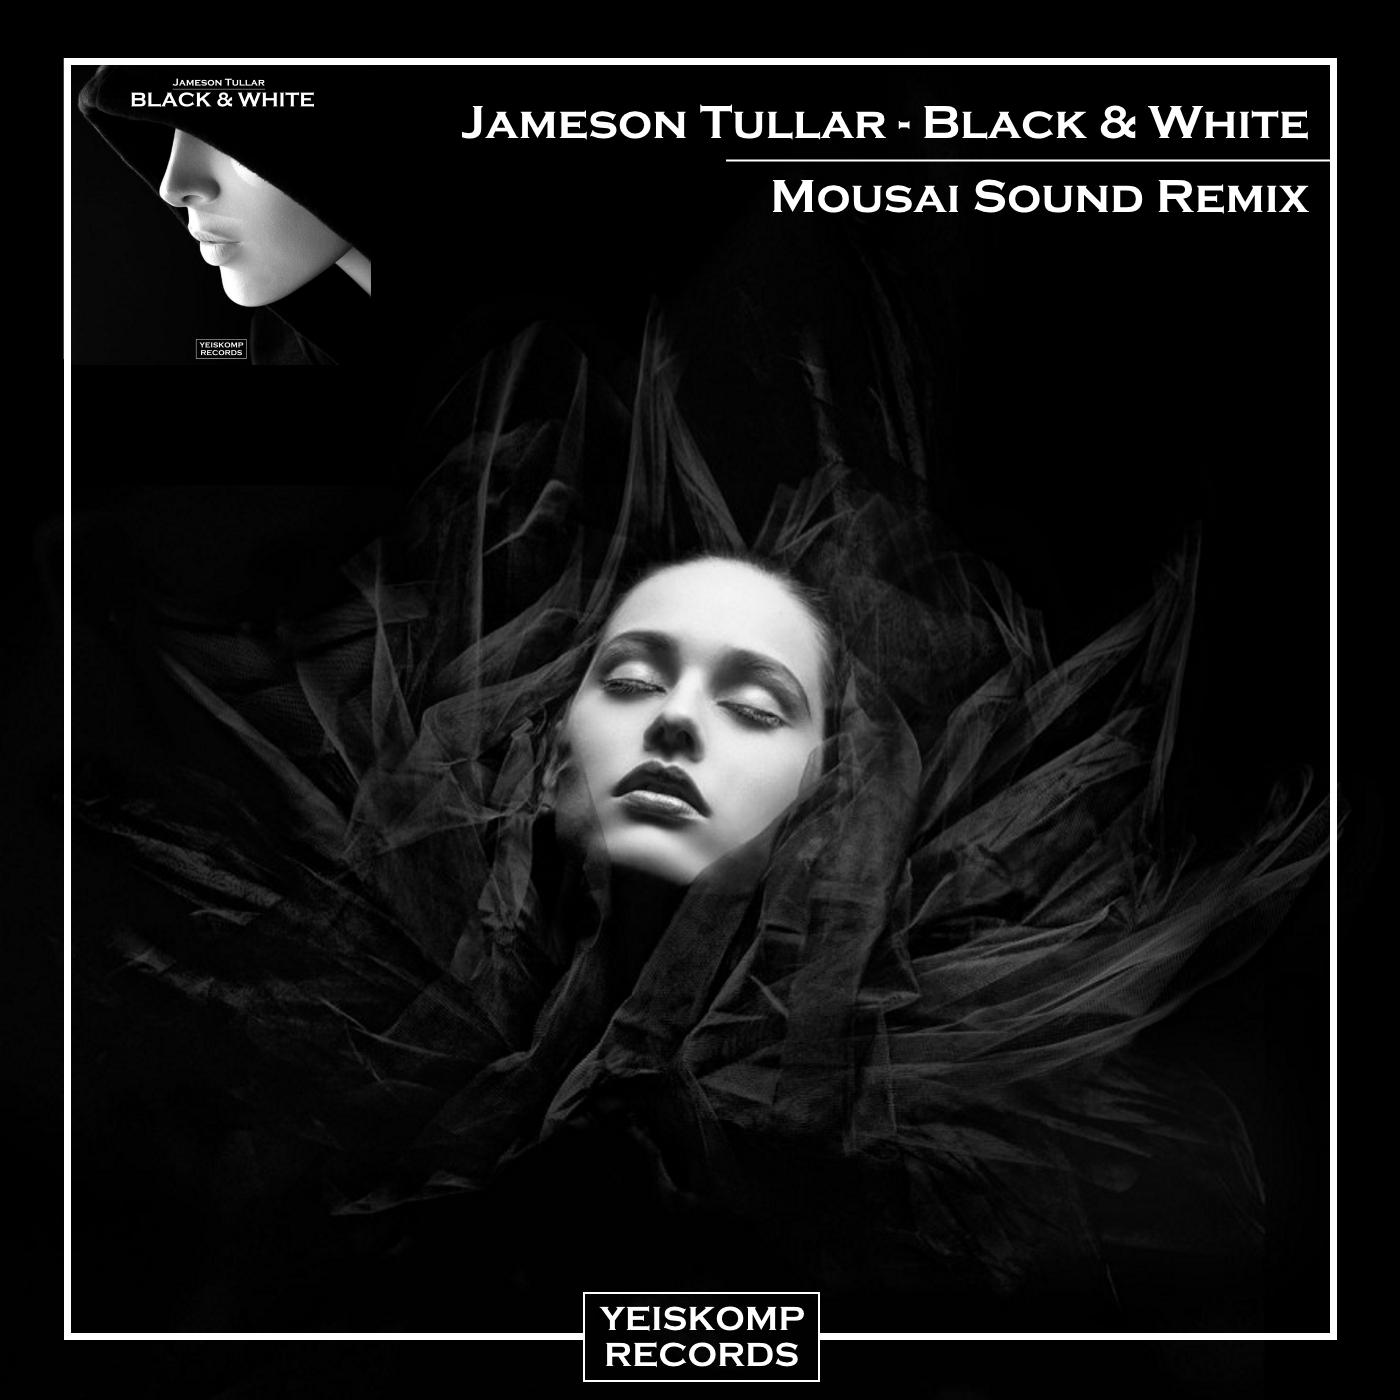 Jameson Tullar - Black & White (Mousai Sound Remix)